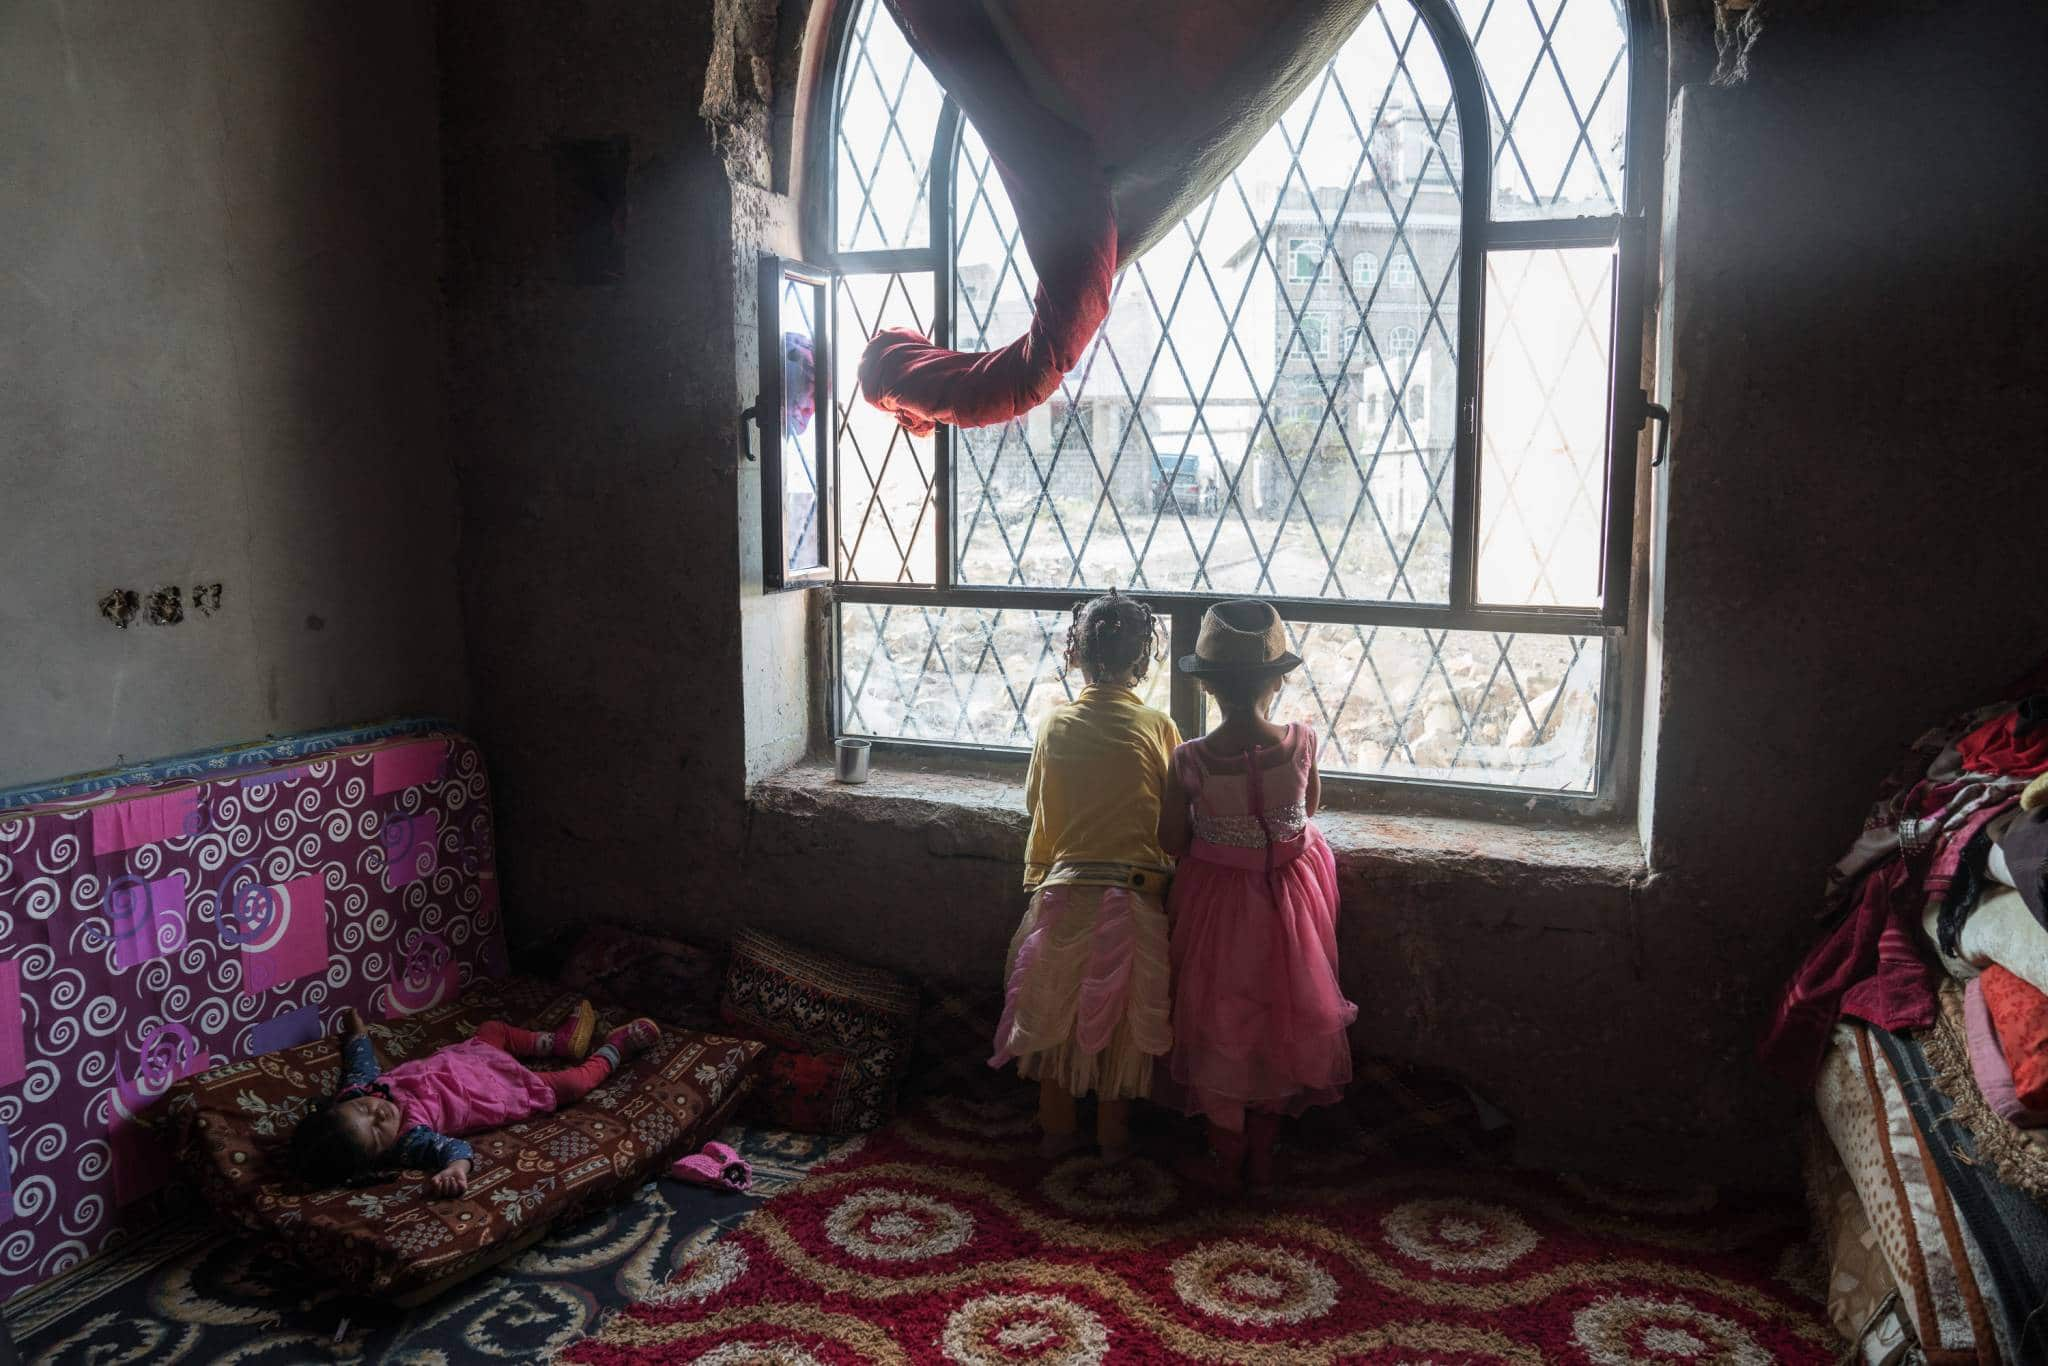 AL ABTHI BUILDING, IBB CITY, YEMEN - 21 APRIL 2017.   Children peer out of a window in a former government building in the suburbs of Ibb. The building was provided by local authorities to house 53 displaced families who fled here from Taizz after heavy fighting flared up in the summer of 2015.   The building has no electricity or running water. The displaced families installed solar panels on the roof of the building to provide power for rudimentary lighting at night. Many of the children help their parents by collecting water and tending to the younger children in the building.